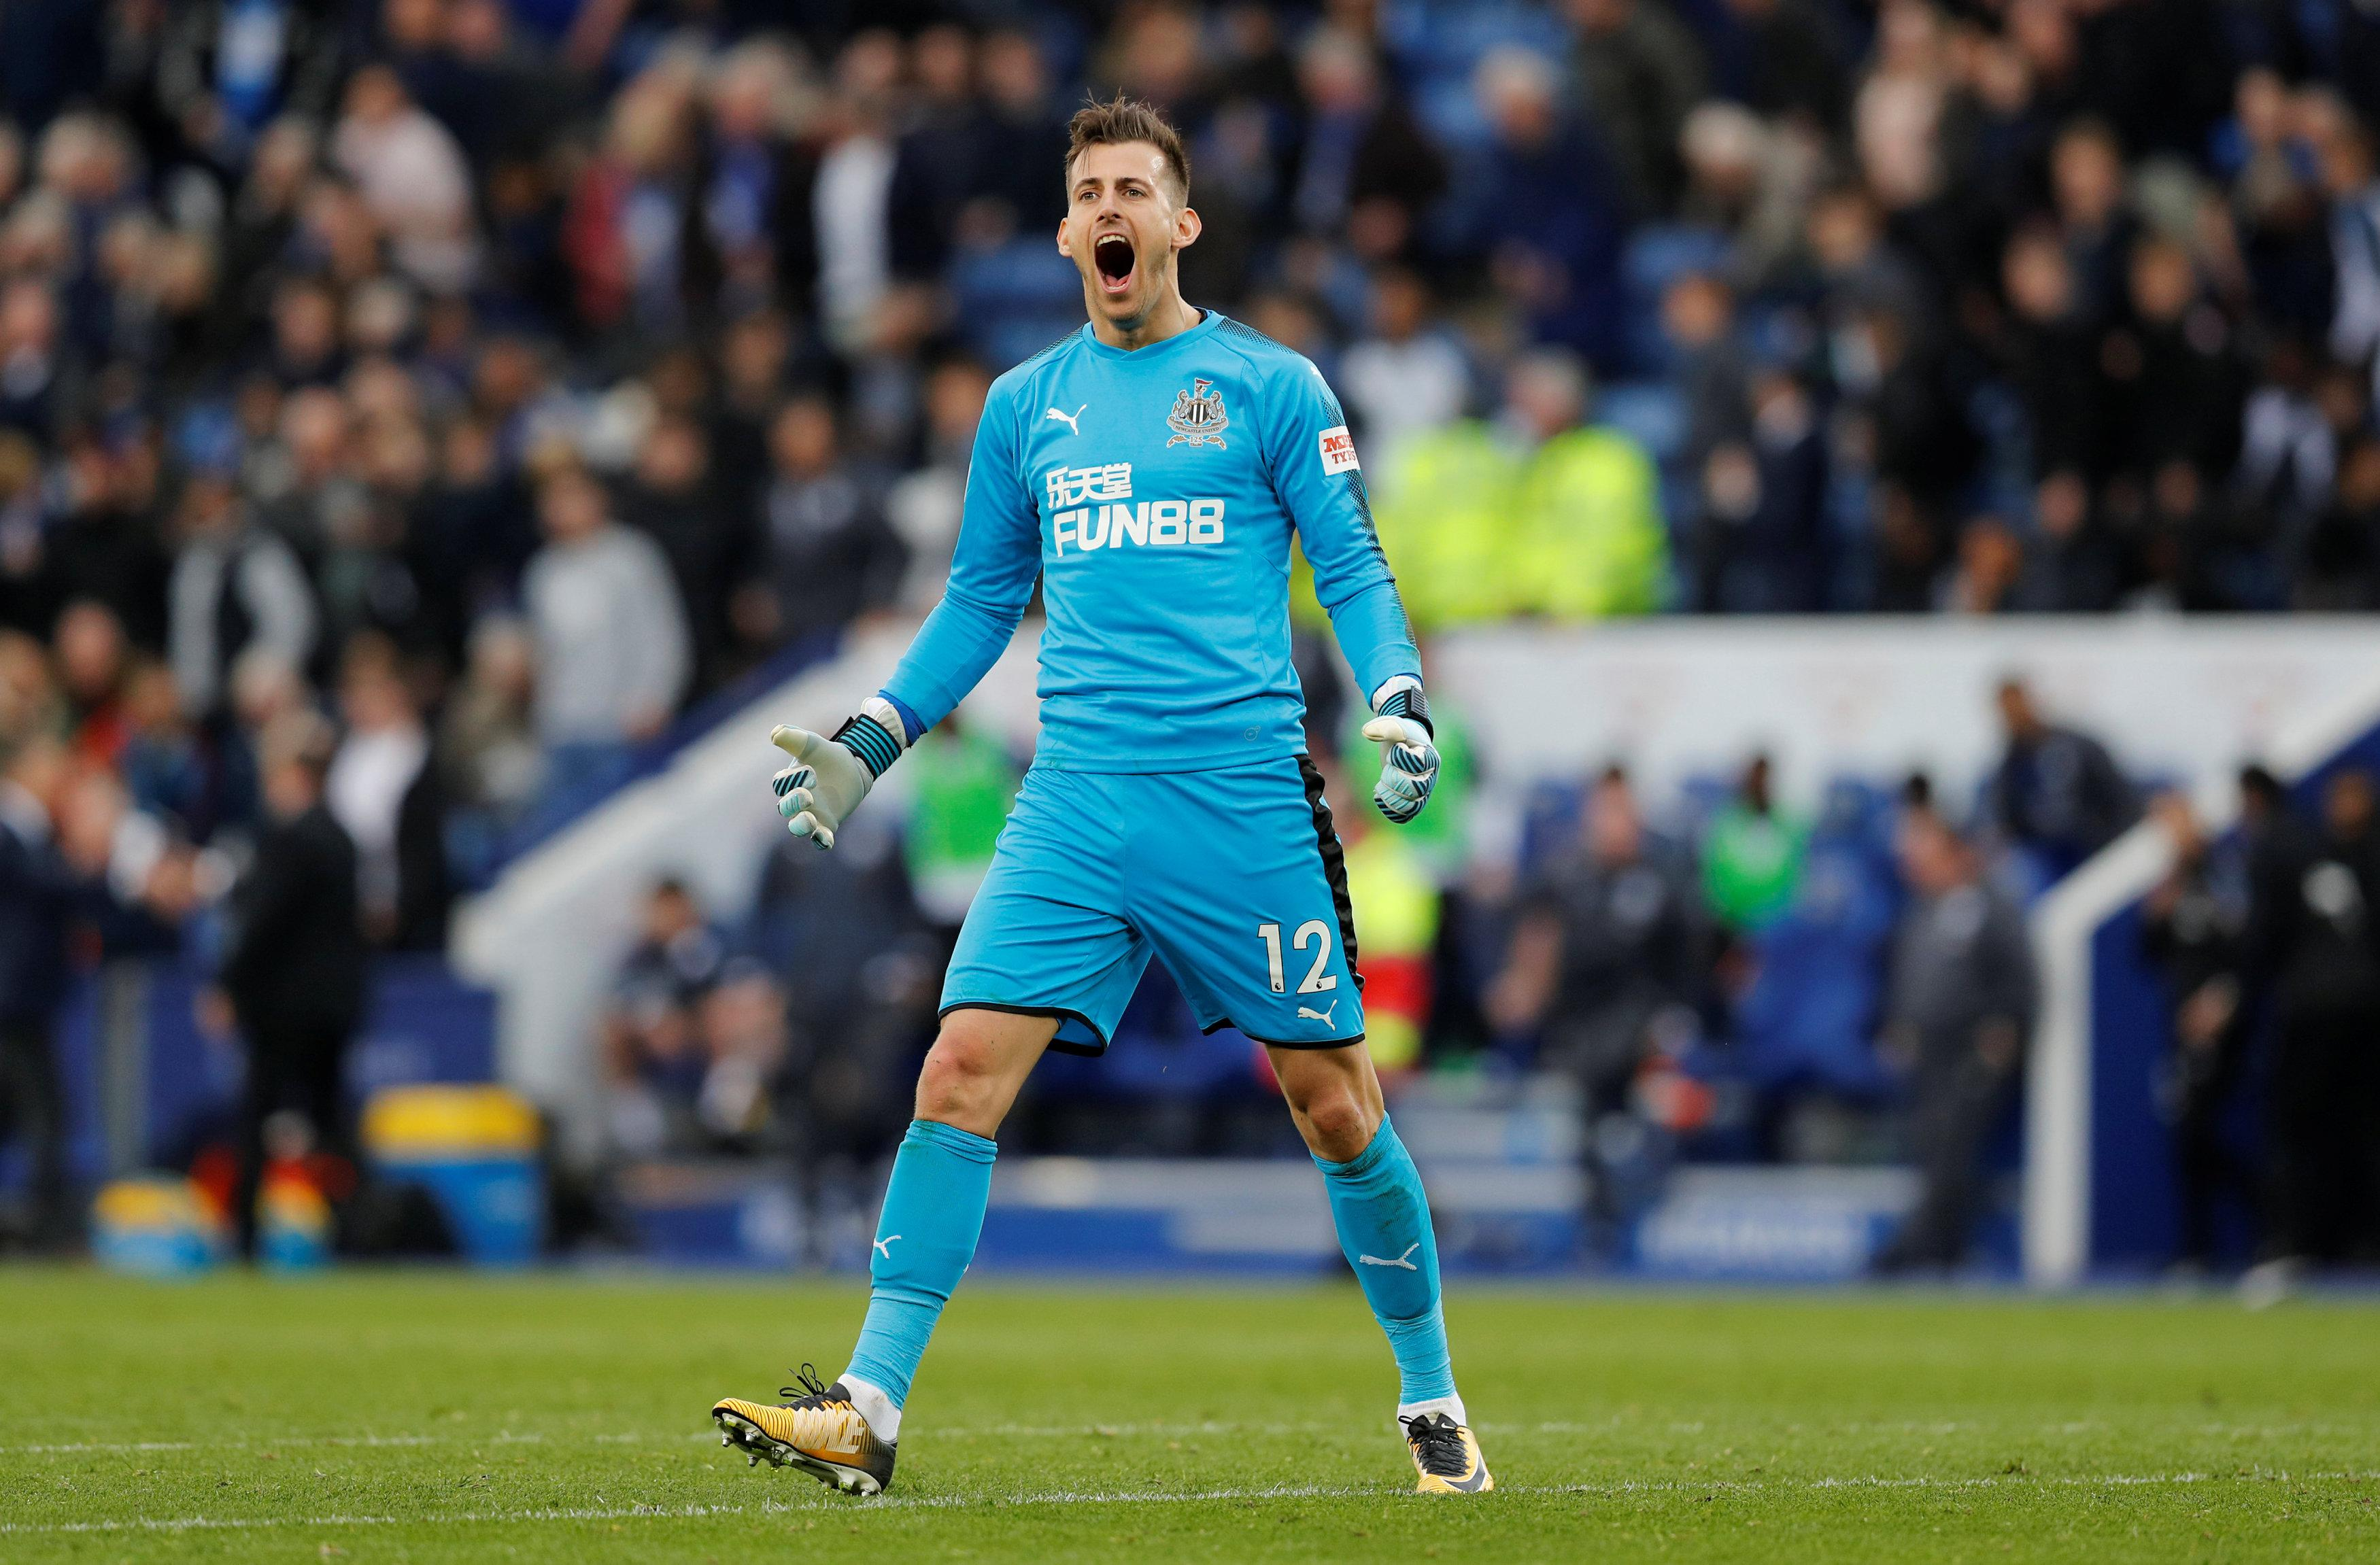 Martin Dubravka has been a revelation since joining Newcastle on loan in January